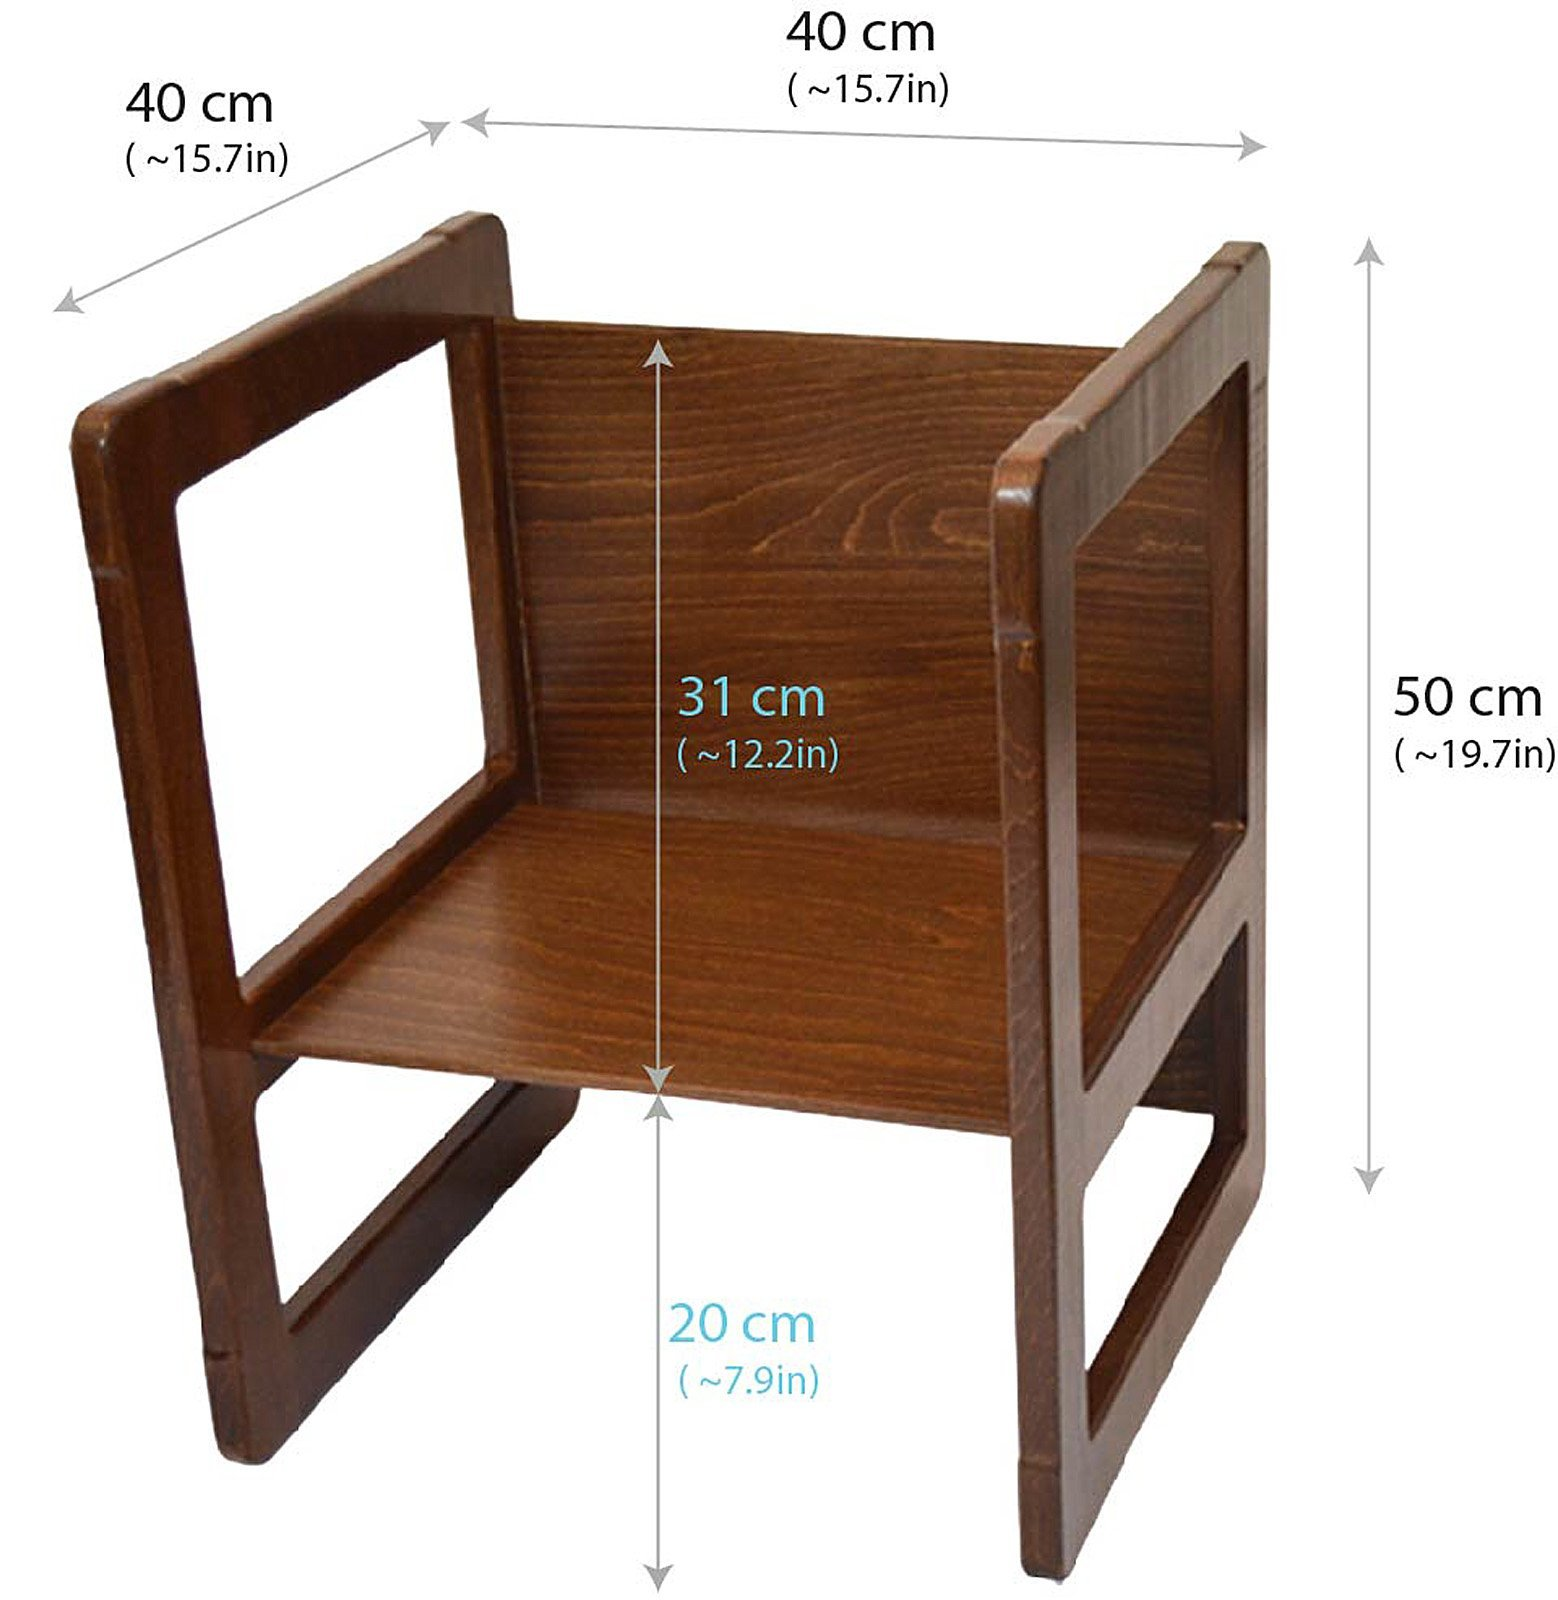 3 in 1 Childrens Multifunctional Furniture Set of 2, One Small Chair or Table and One Large Chair or Table Beech Wood, Dark Stained by Obique Ltd (Image #7)